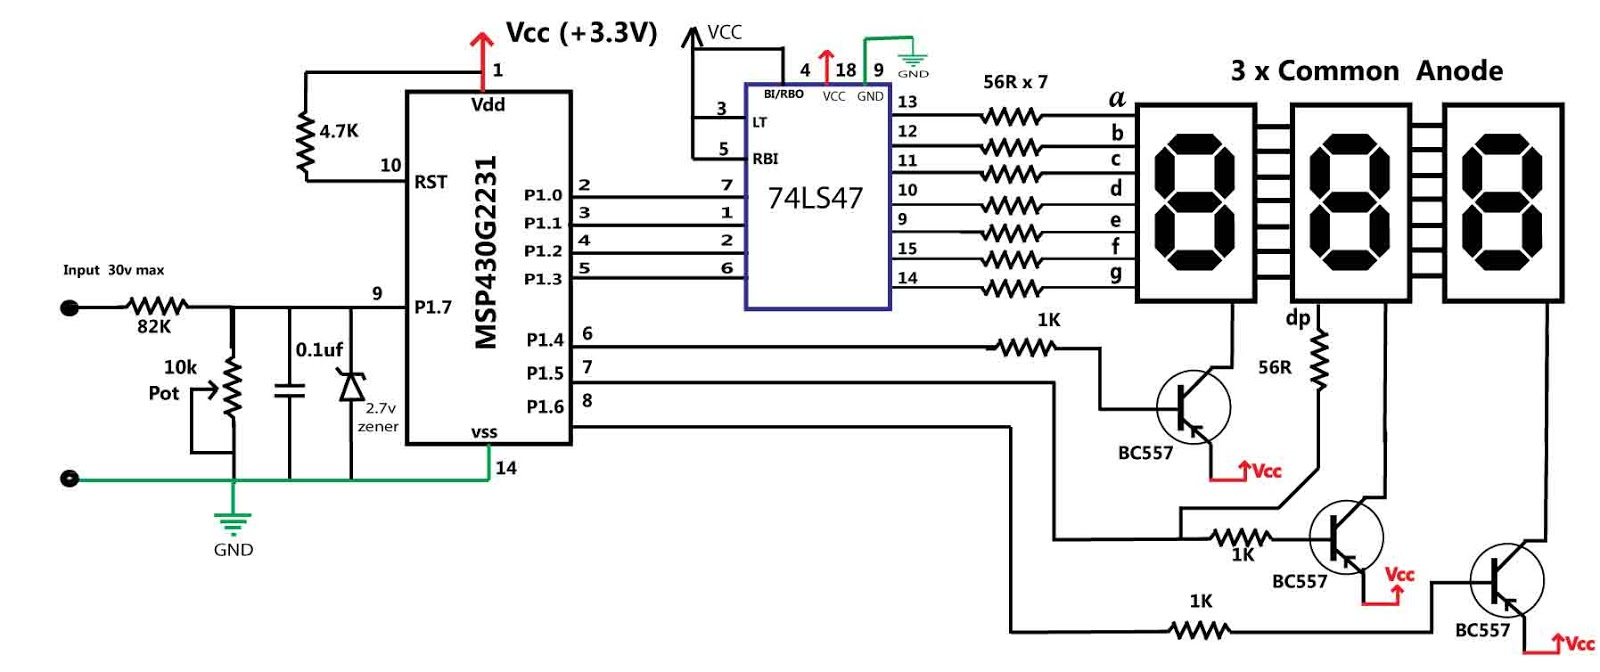 Embedded Engineering Msp430 Based 30v Volt Meter Supply 5v Vcc And 12v To Input Led Driver Application Circuits